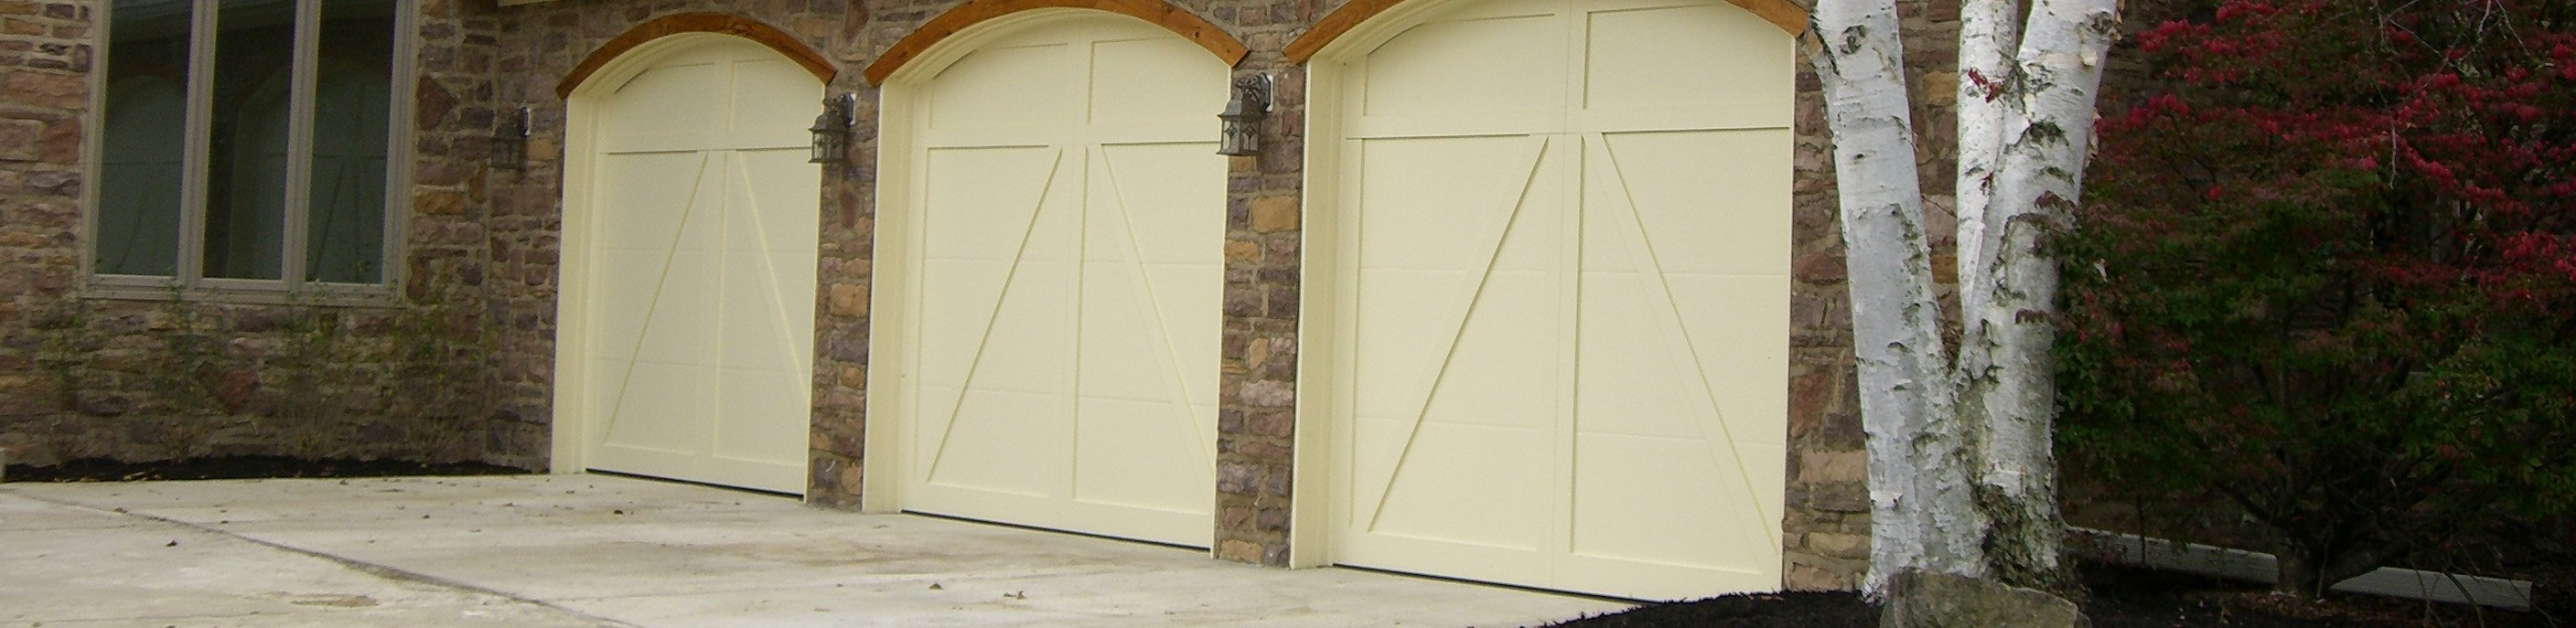 Garage door replacement columbus oh 614 873 3905 for Dublin garage door repair